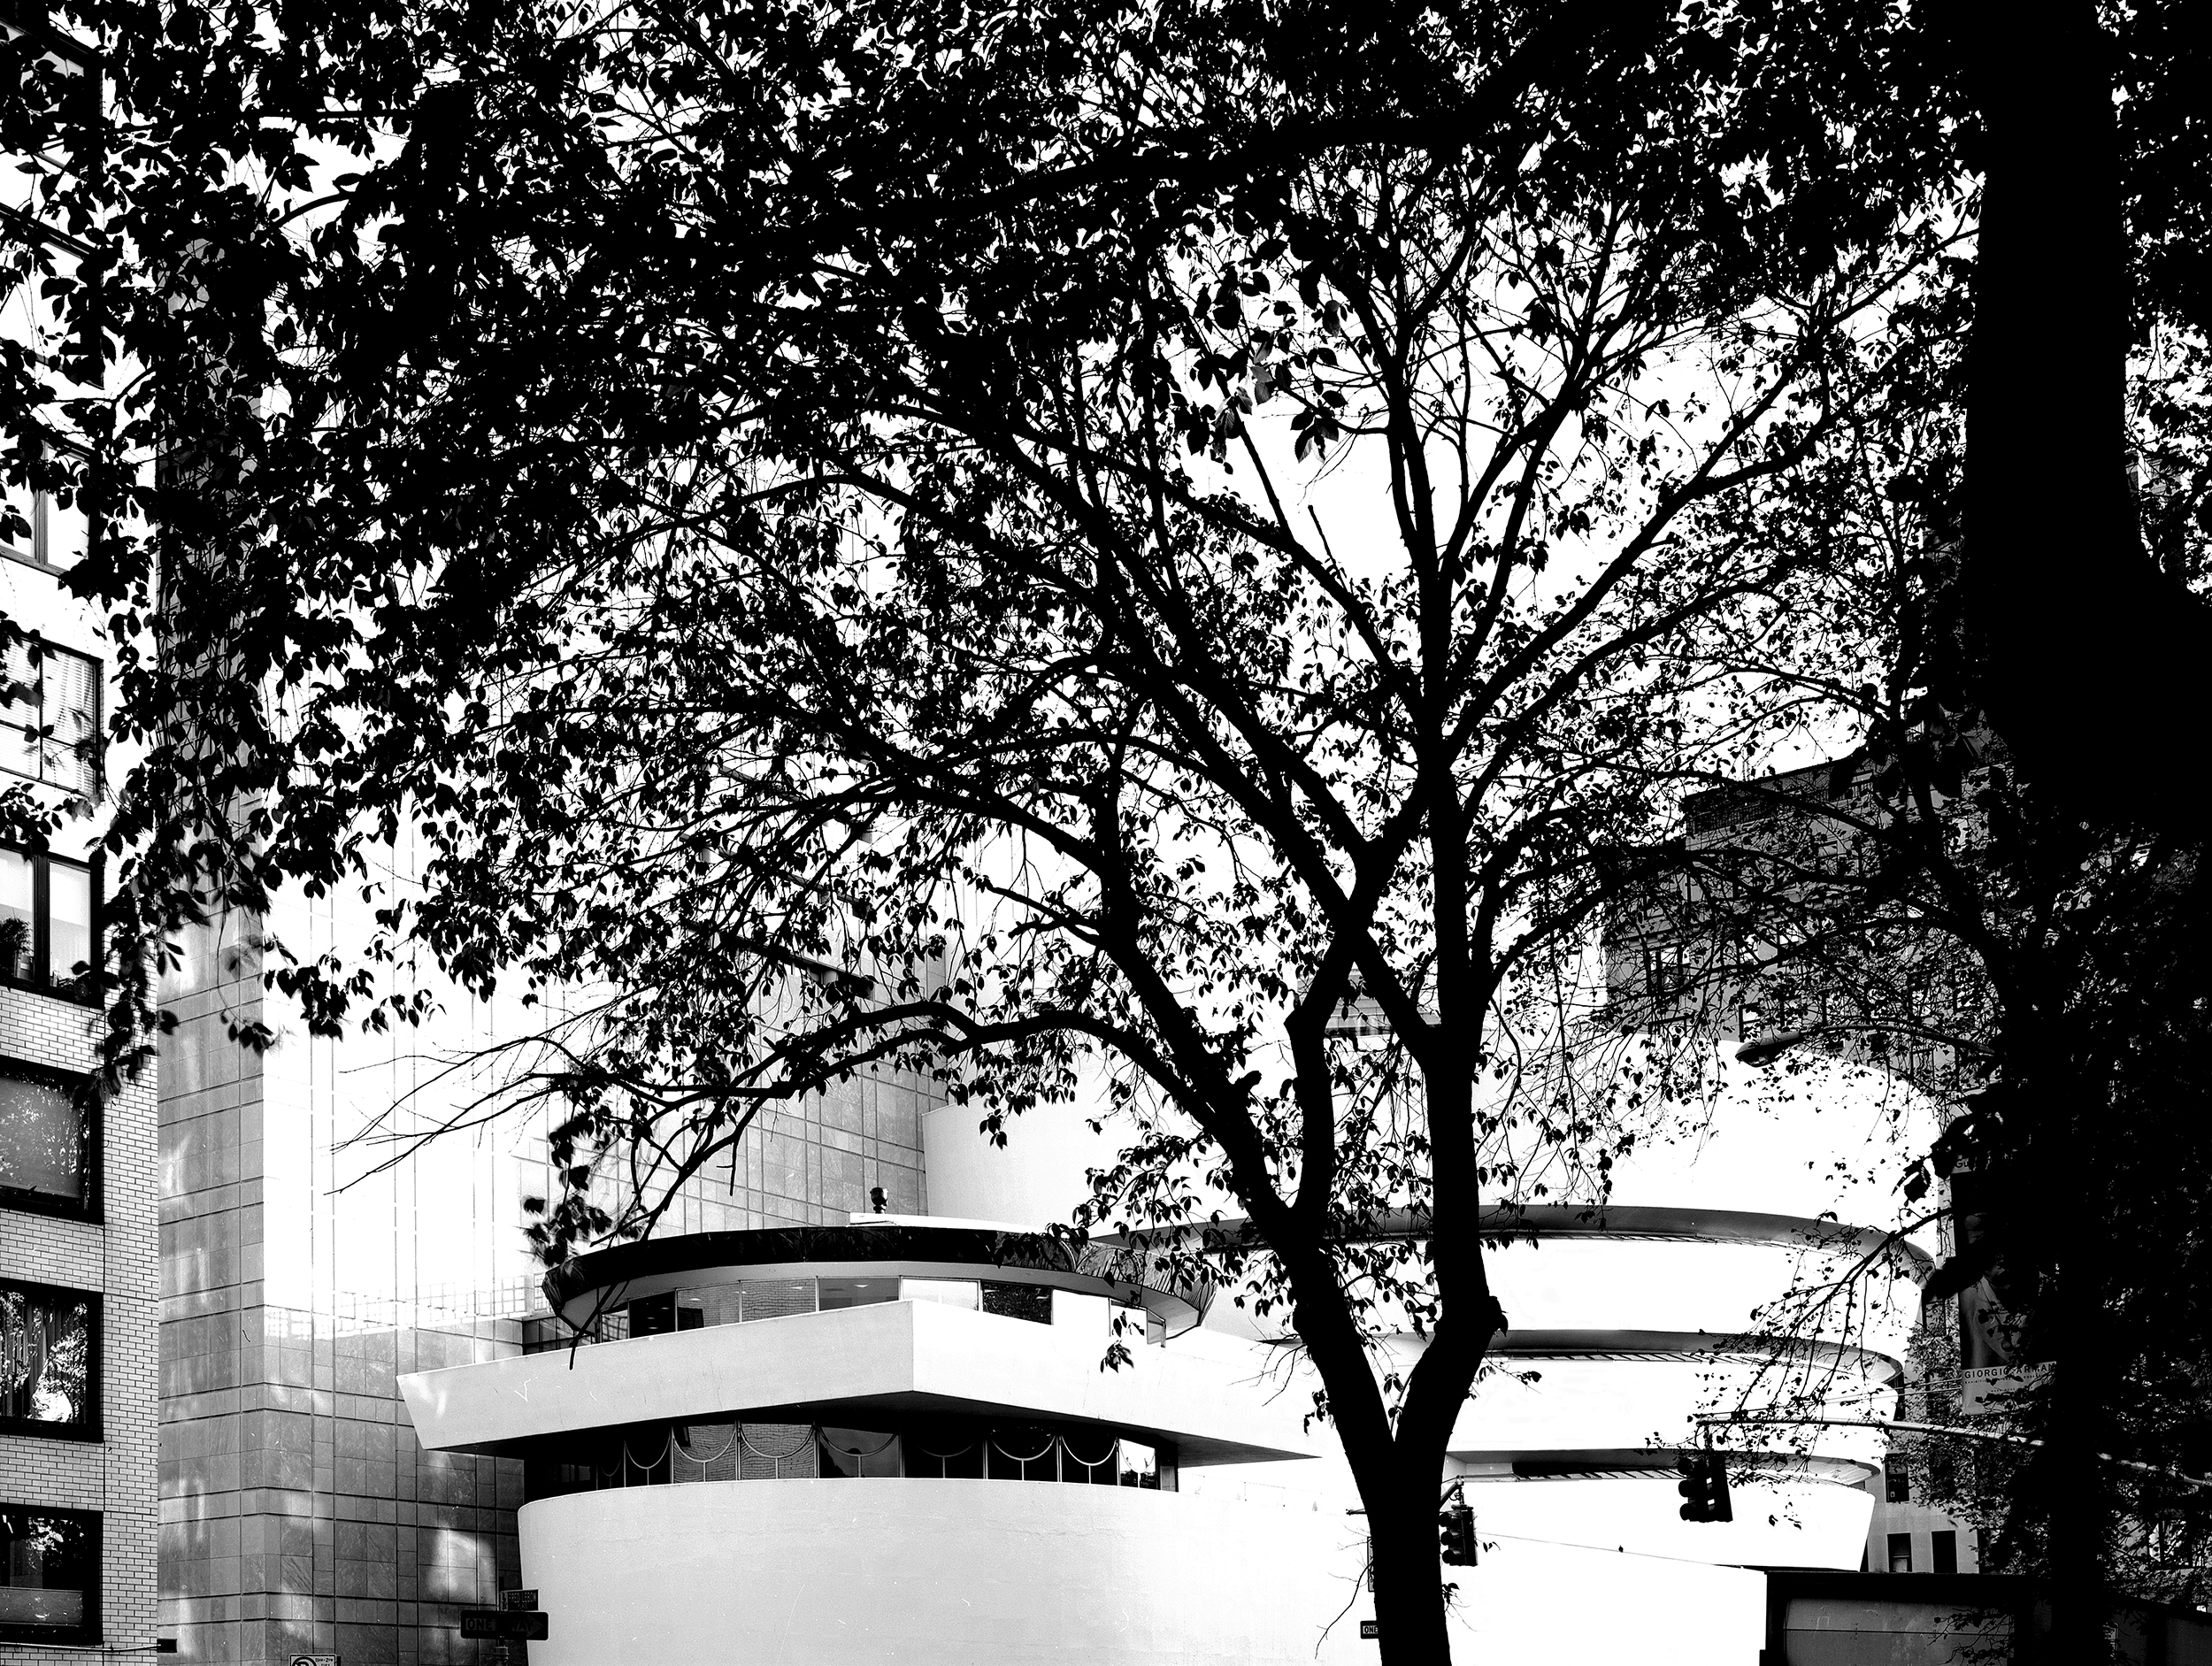 S.R. Guggenheim Museum from 5th Av 2000.jpg